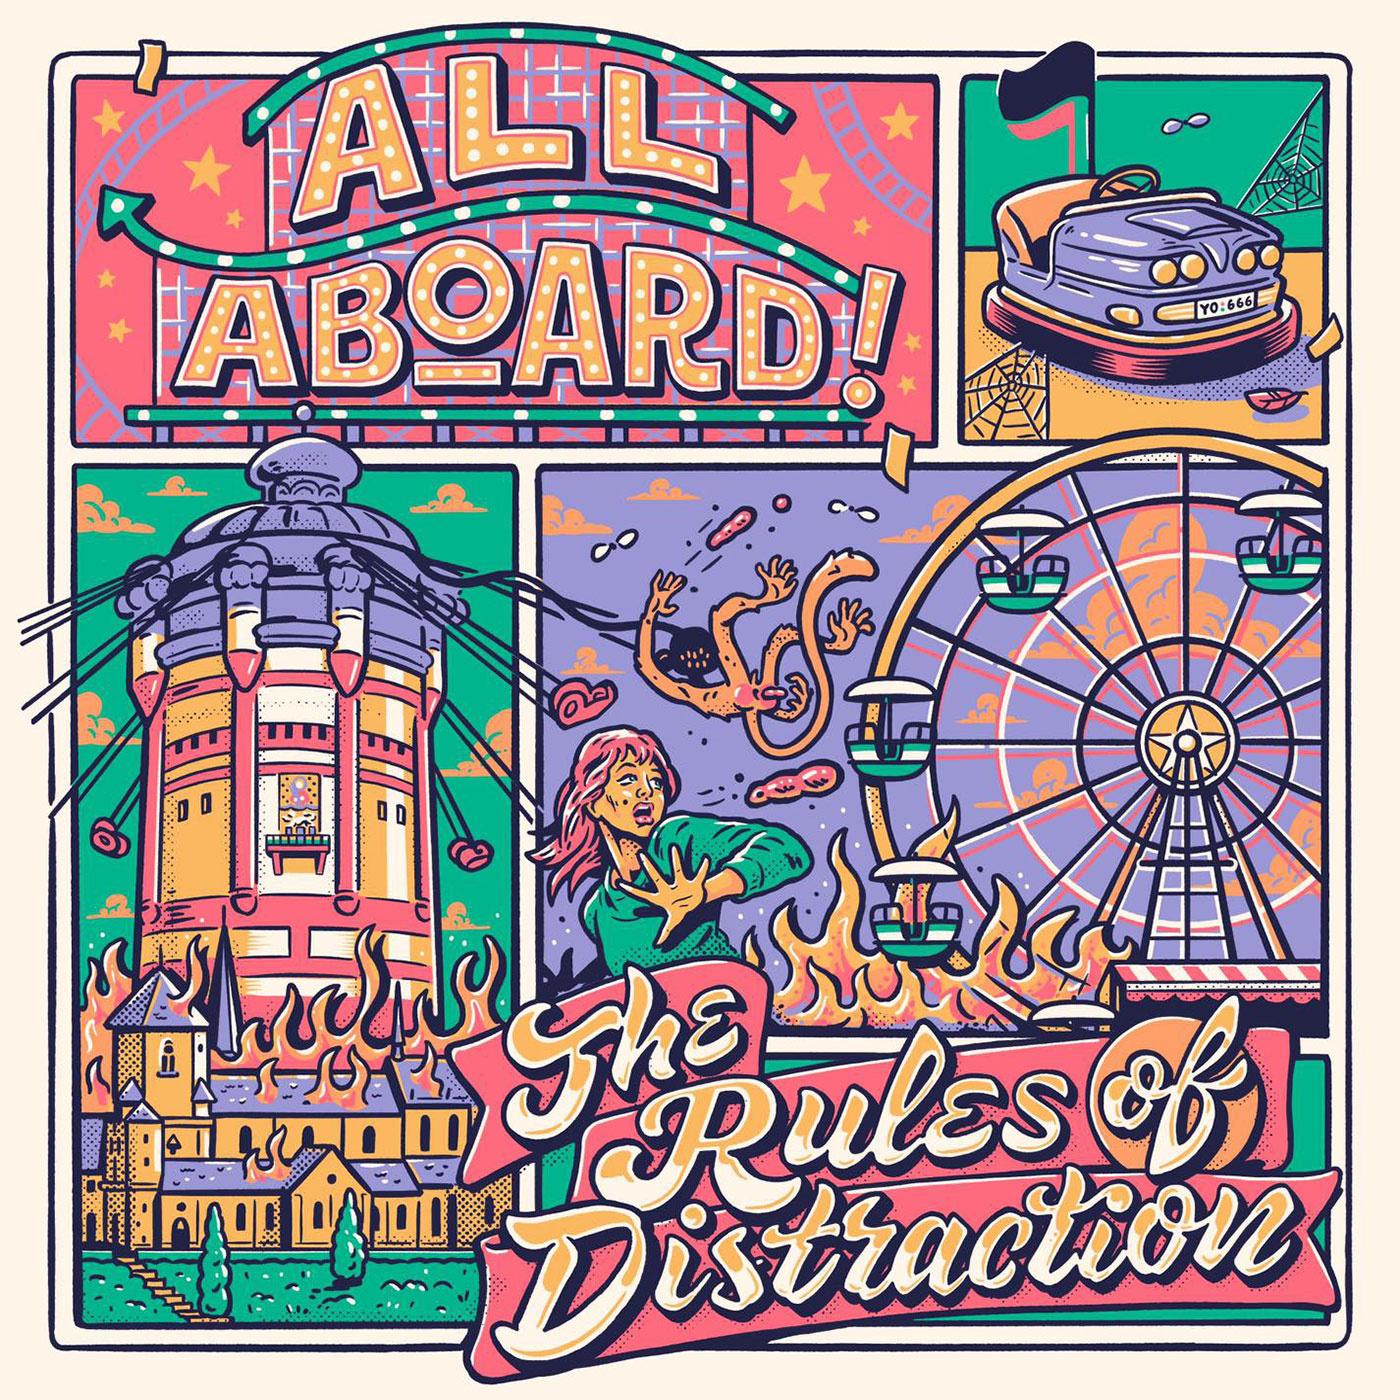 All Aboard! - The Rules Of Distraction LP - Engineer Records / Bakraufarfita Records